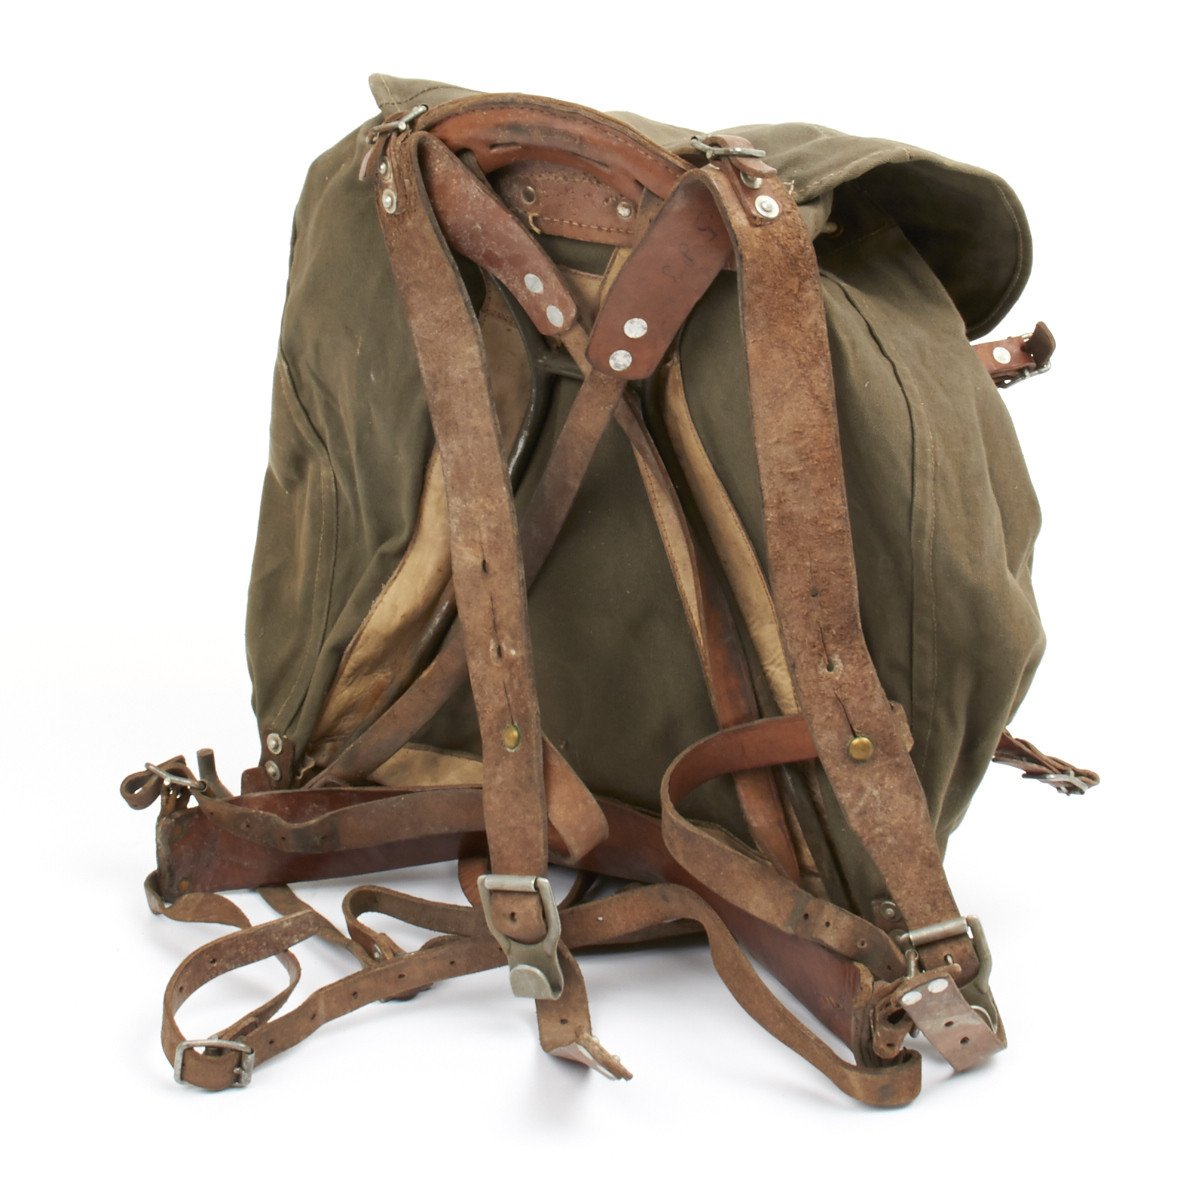 Original Swedish Wwii M1939 Alpine Rucksack Backpack With